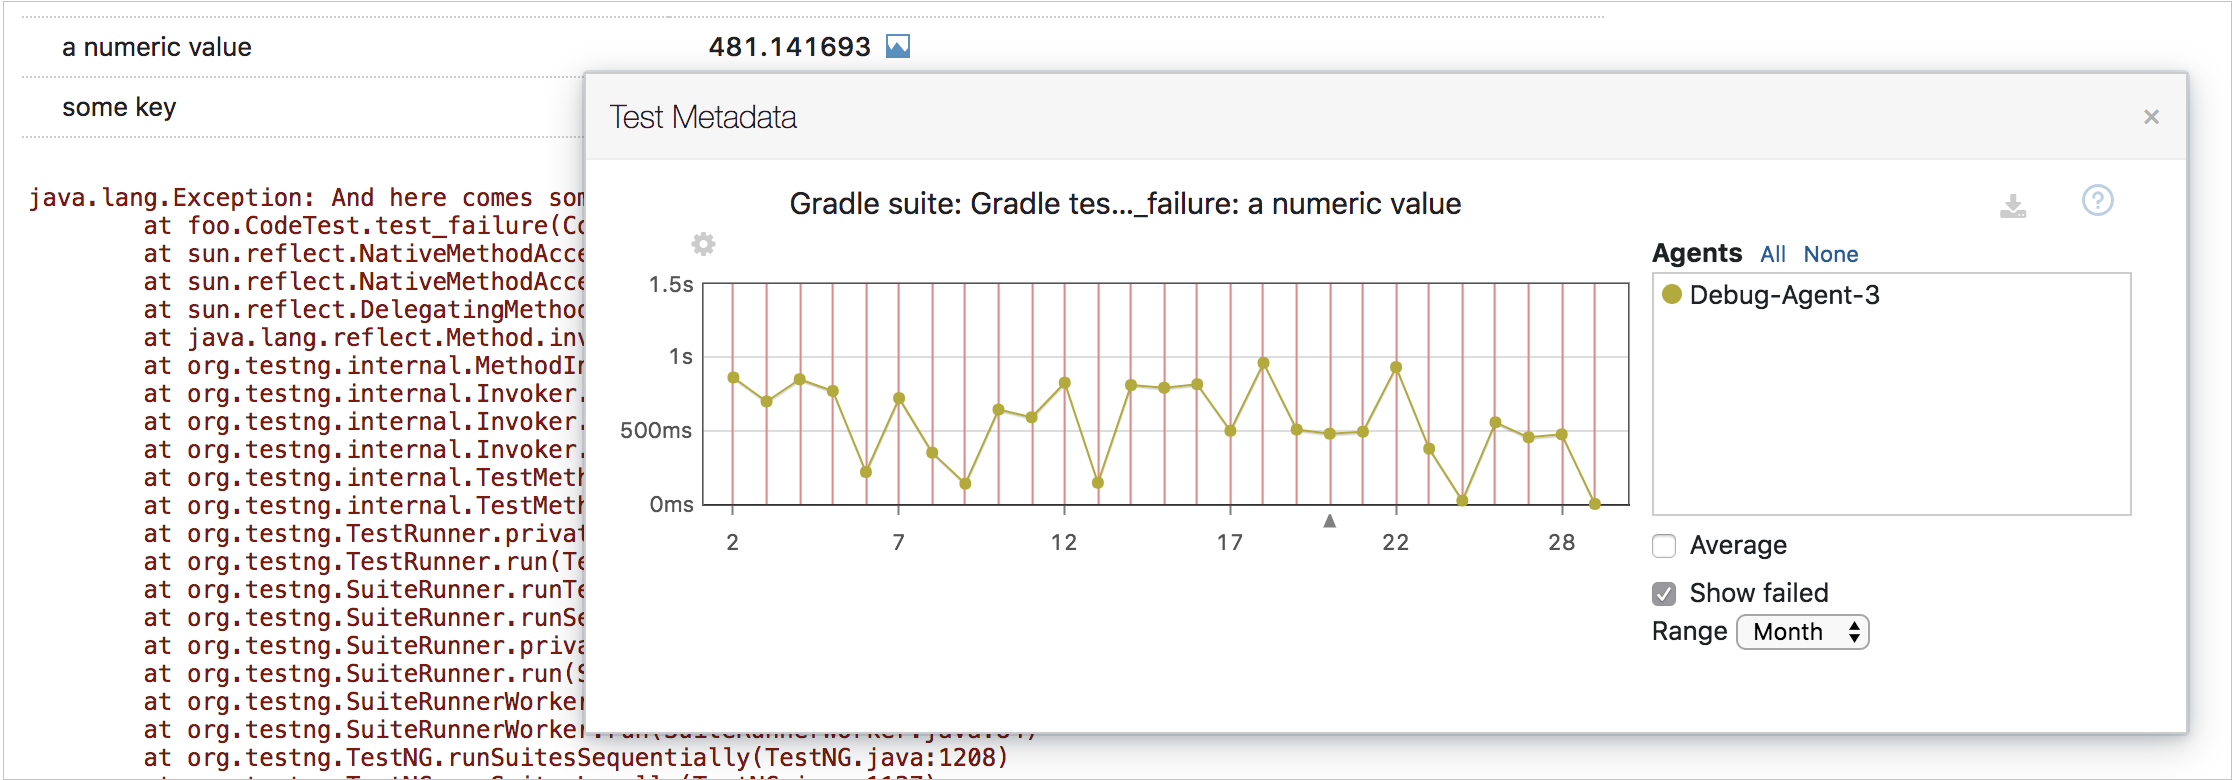 Additional test data graph for numeric values